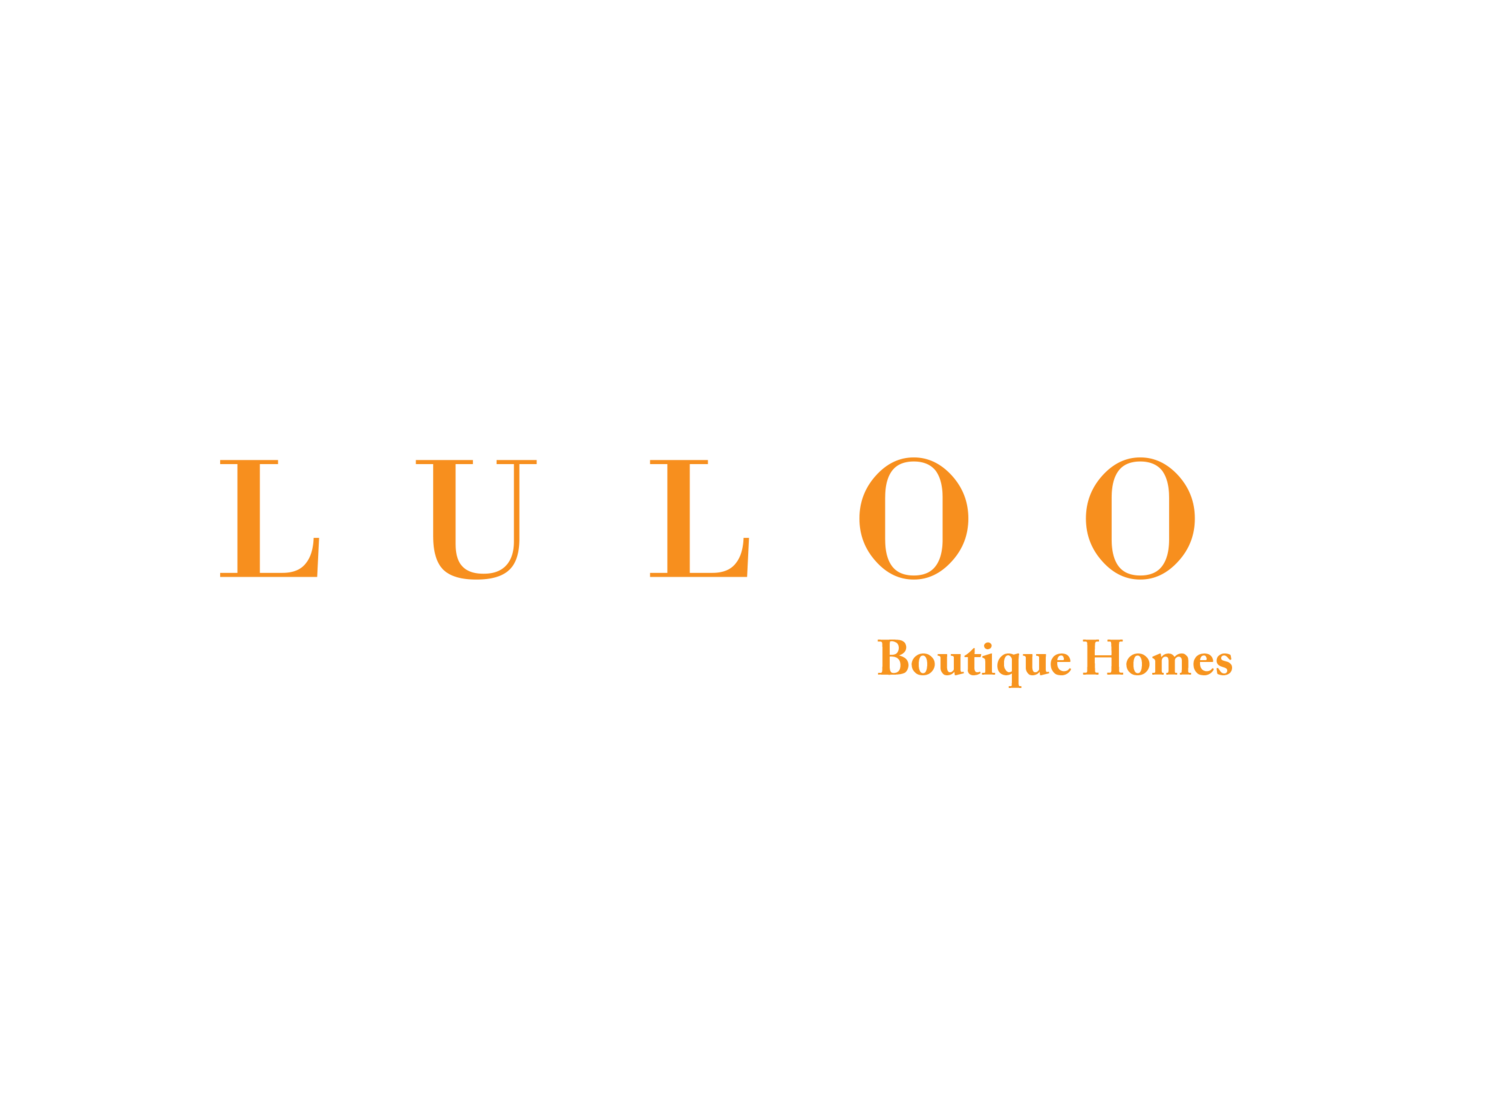 Luloo Boutique Homes